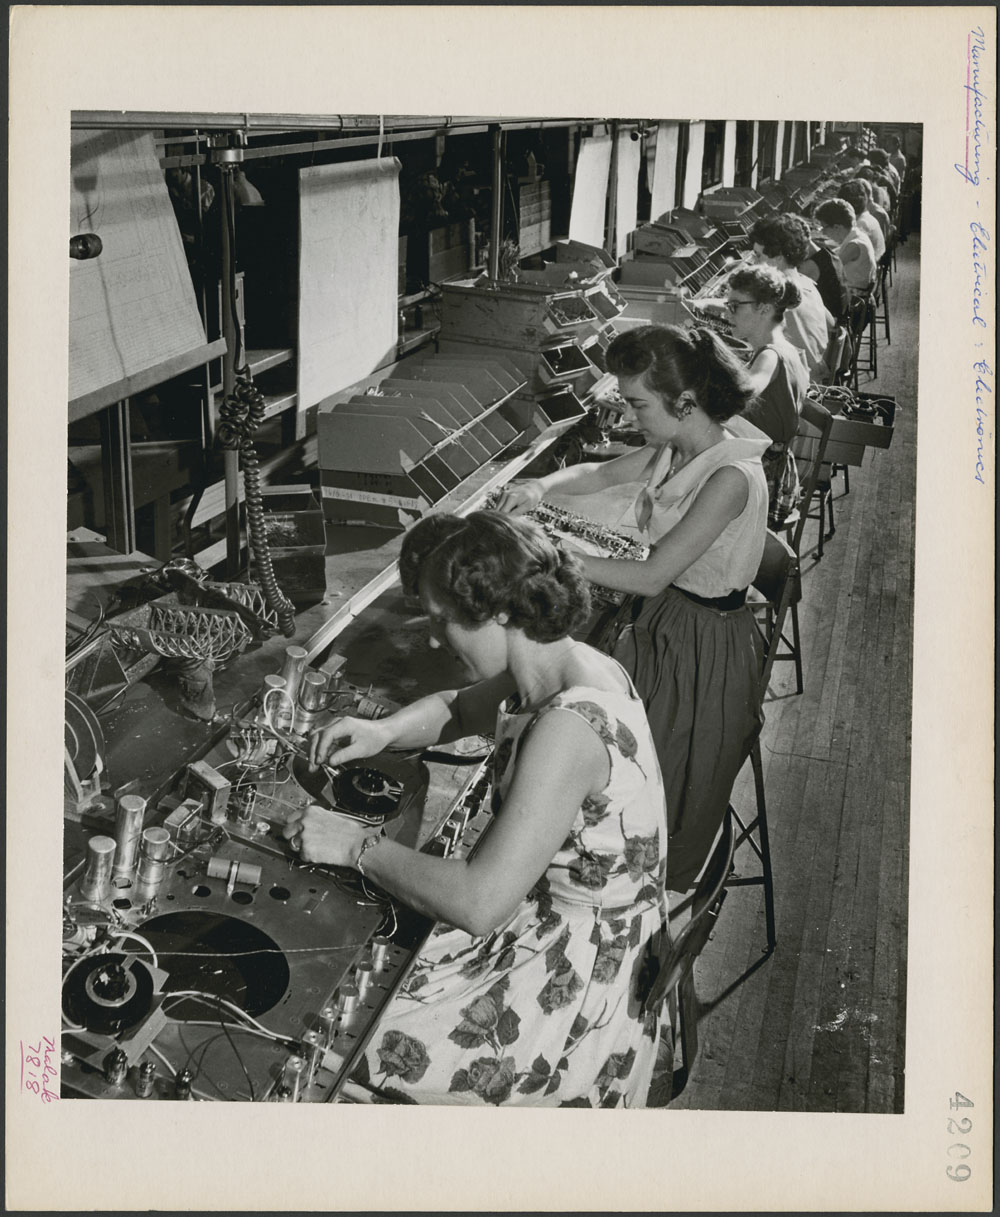 Assembly line of seated women, working on electronics.